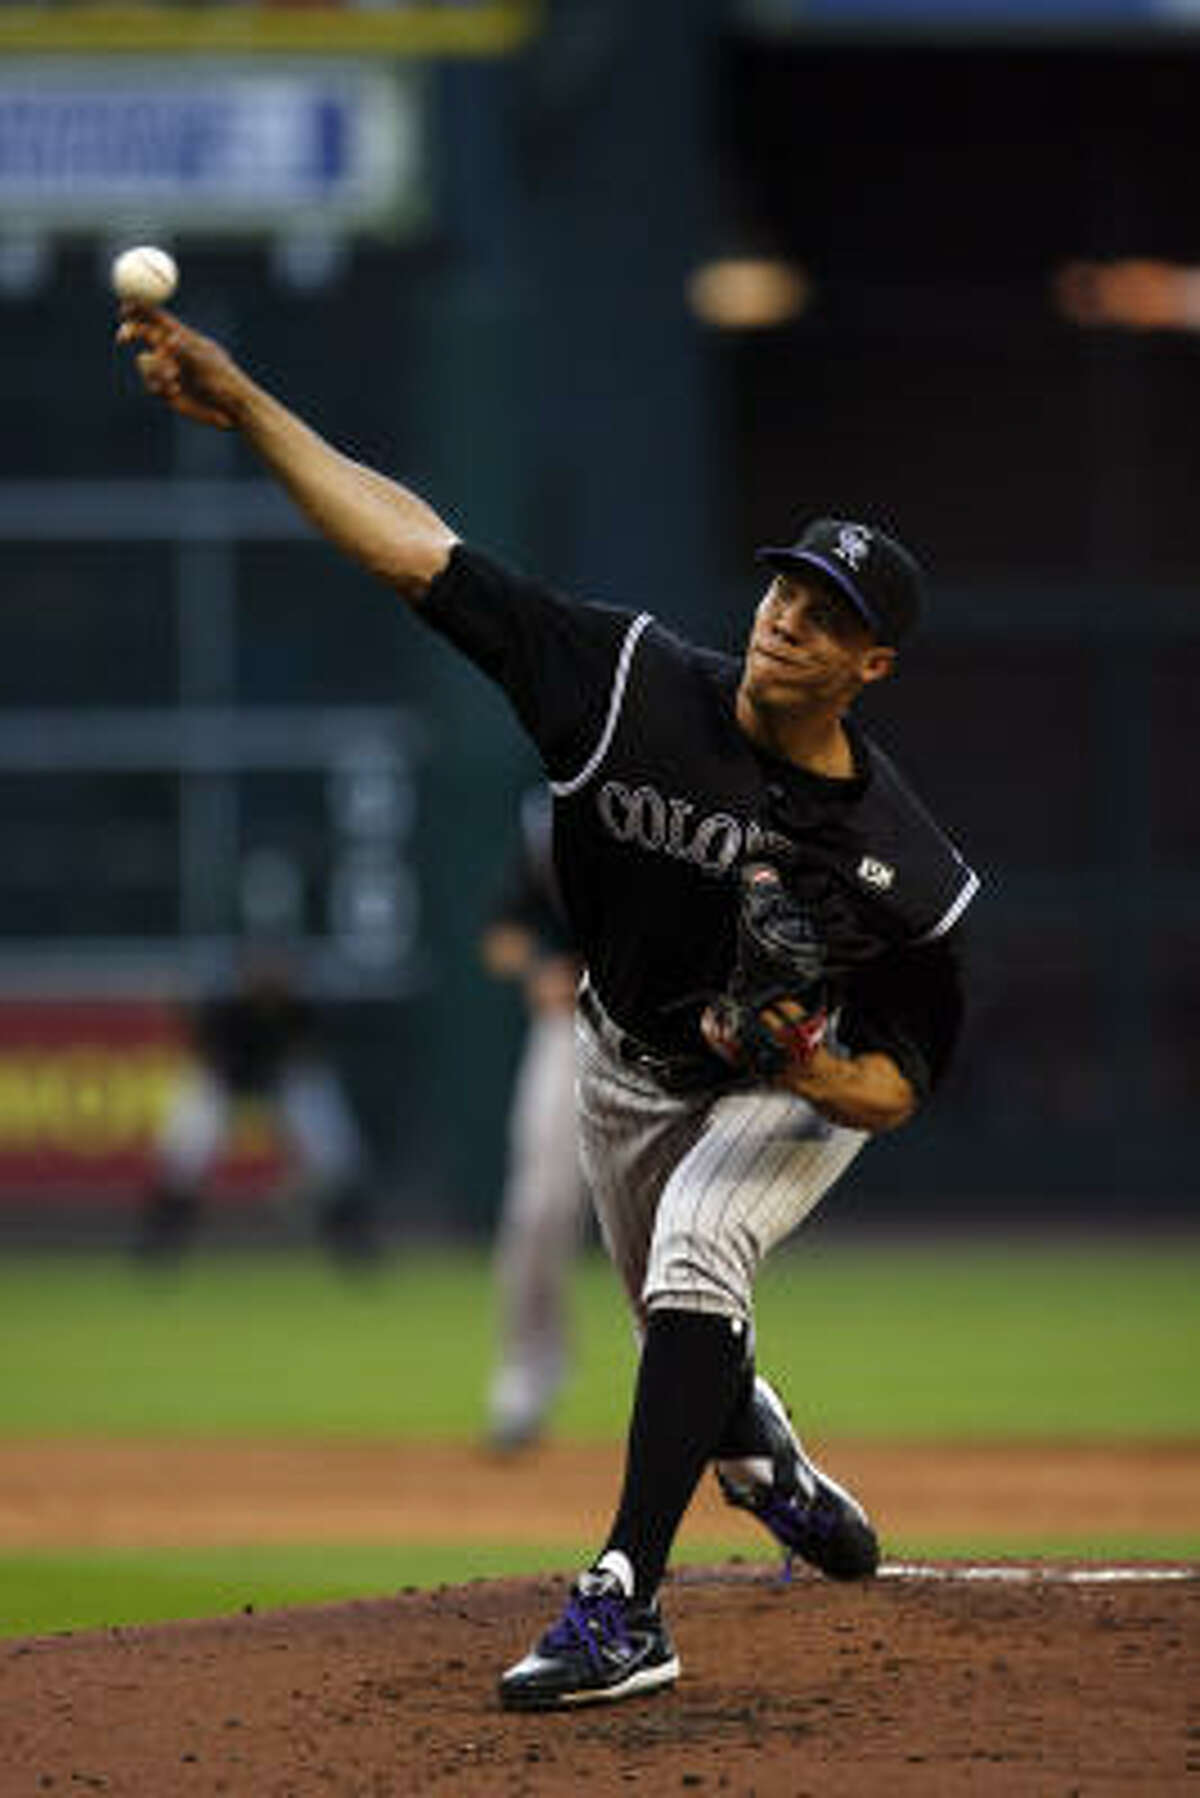 Rockies Ubaldo Jimenez threw for seven innings and gave up only one hit and struck out four.